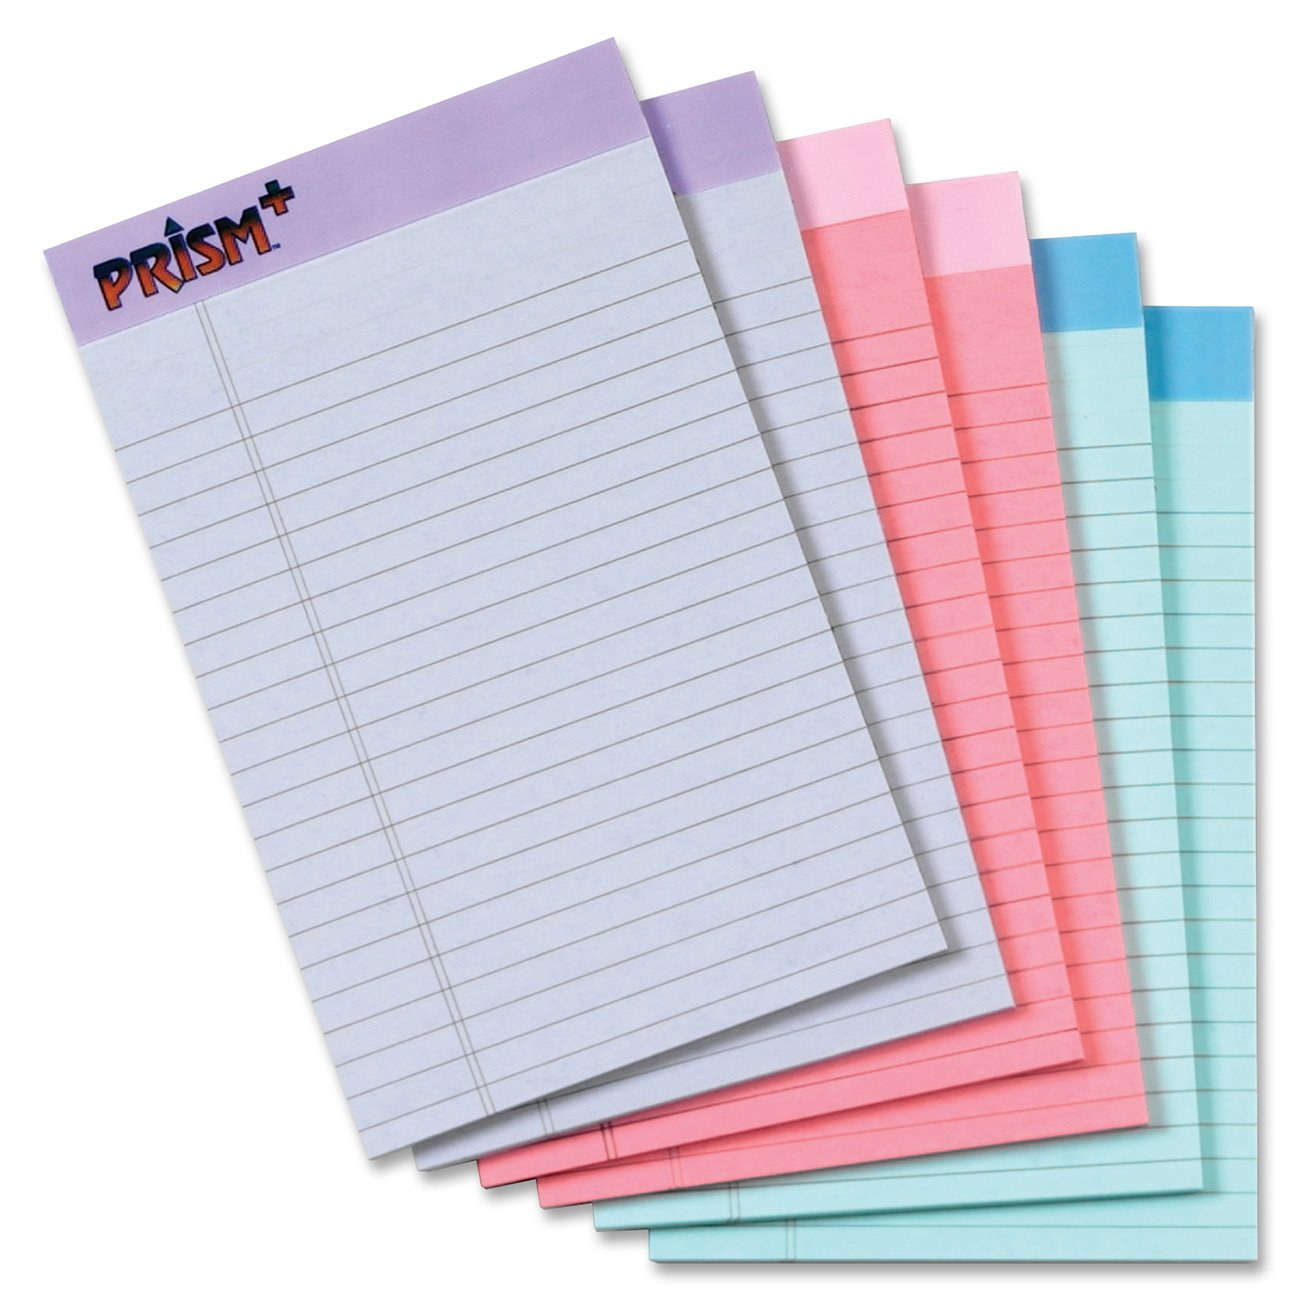 writing pads By anna griffin® this notepad set will come tied together with a knotted satin ribbon in a clear bag, ready for gift giving set includes 3 notepads, 100 sheets per pad for a total of 300 sheets.